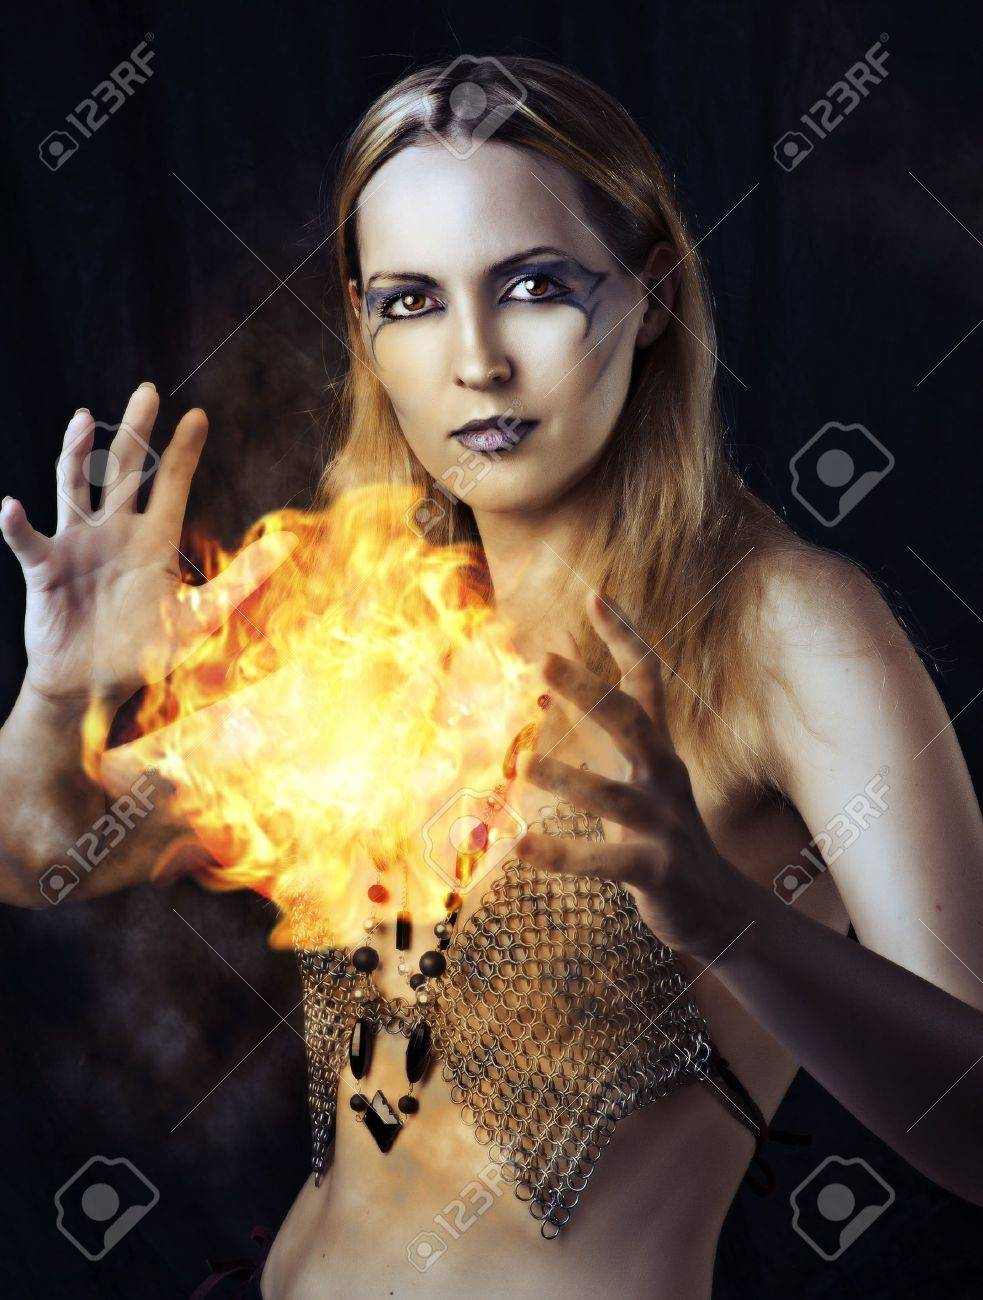 Portrait of dangerous woman witch with fire ball and dark make up Stock Photo - 14484868